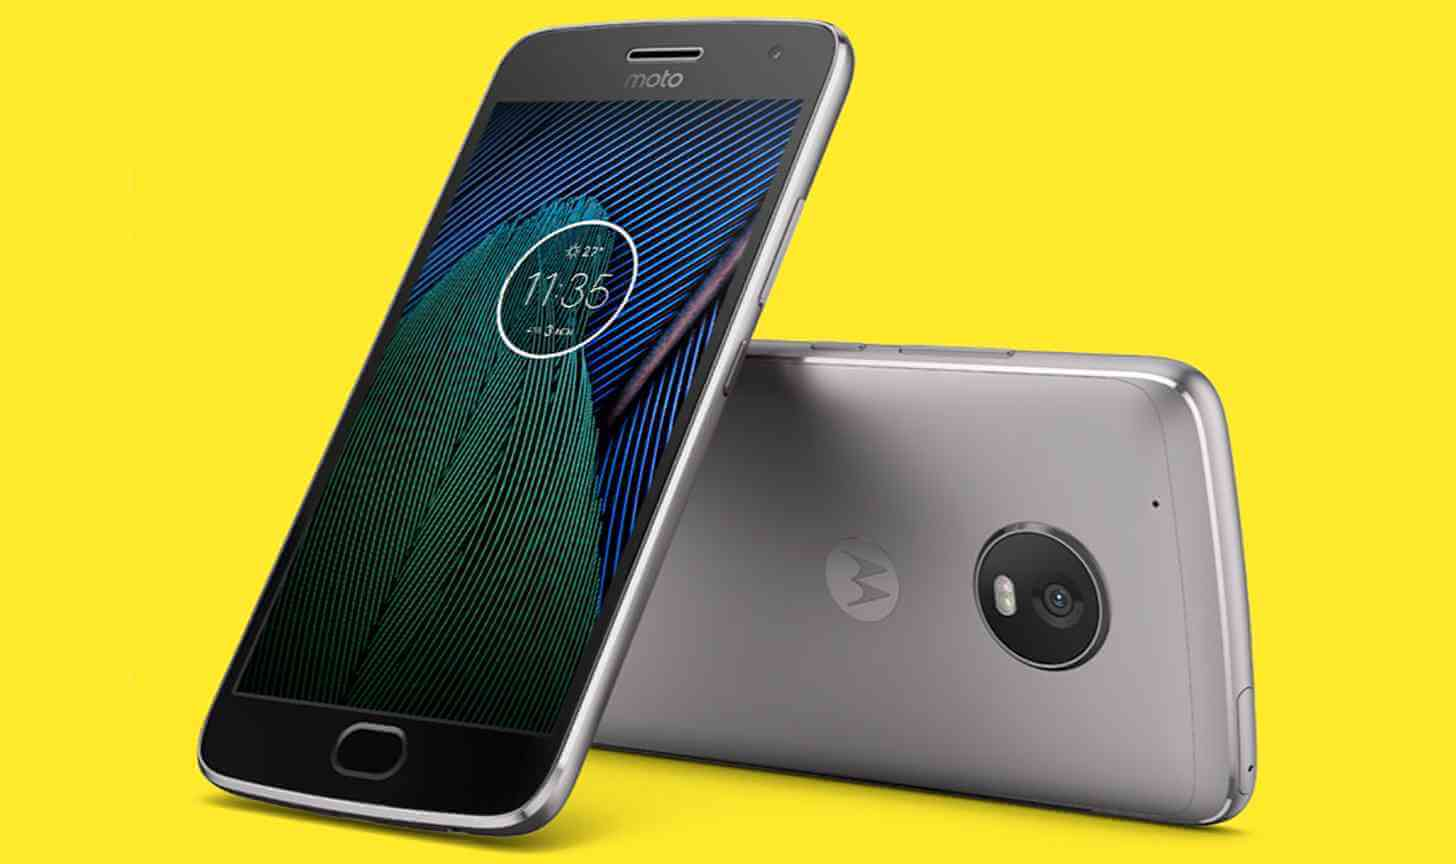 Specificatiile telefoanelor Moto G5 si Moto G5 Plus